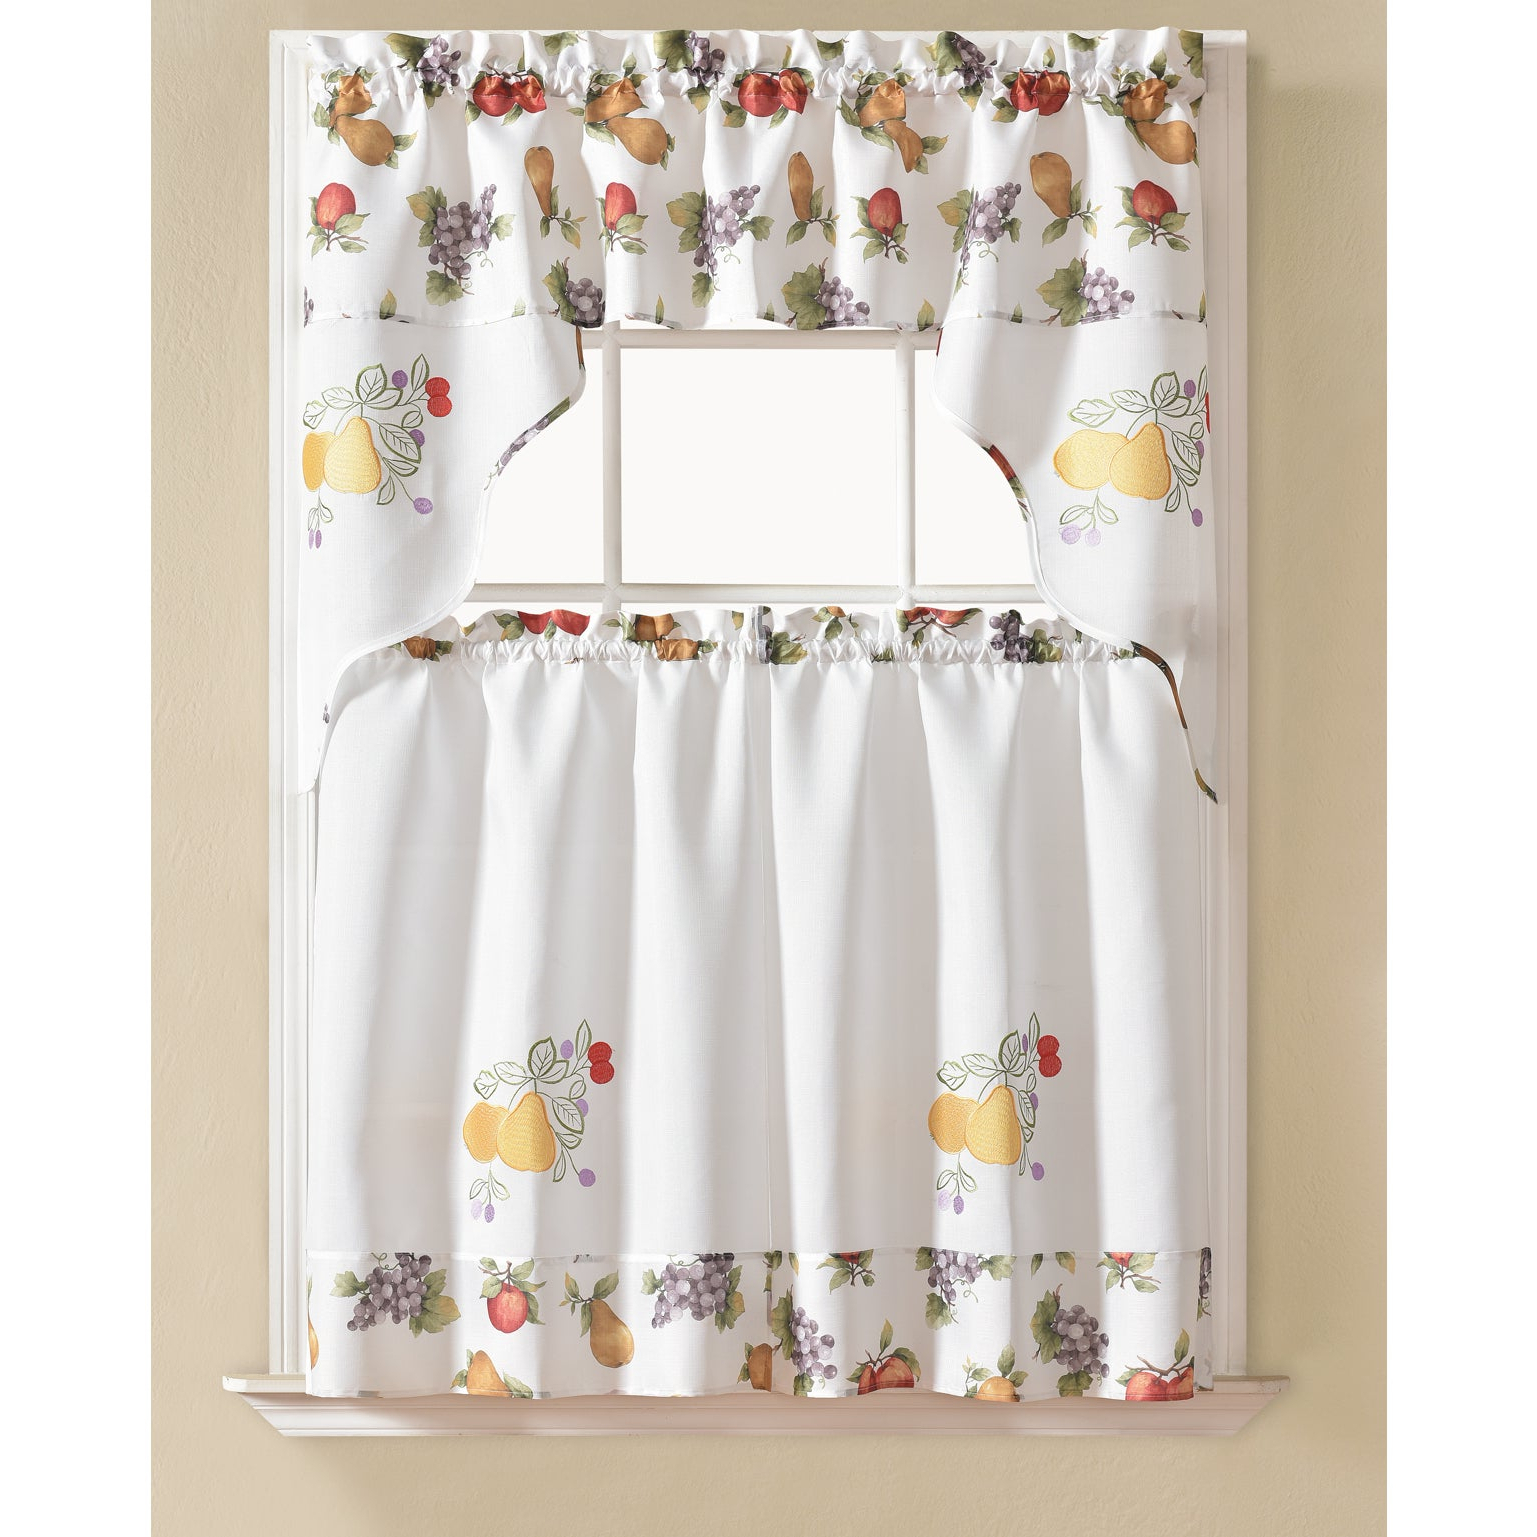 Rt Designers Collection Urban Embroidered Tier And Valance Kitchen Curtain  Tier Set Pertaining To Trendy Embroidered Chef Black 5 Piece Kitchen Curtain Sets (Gallery 4 of 20)